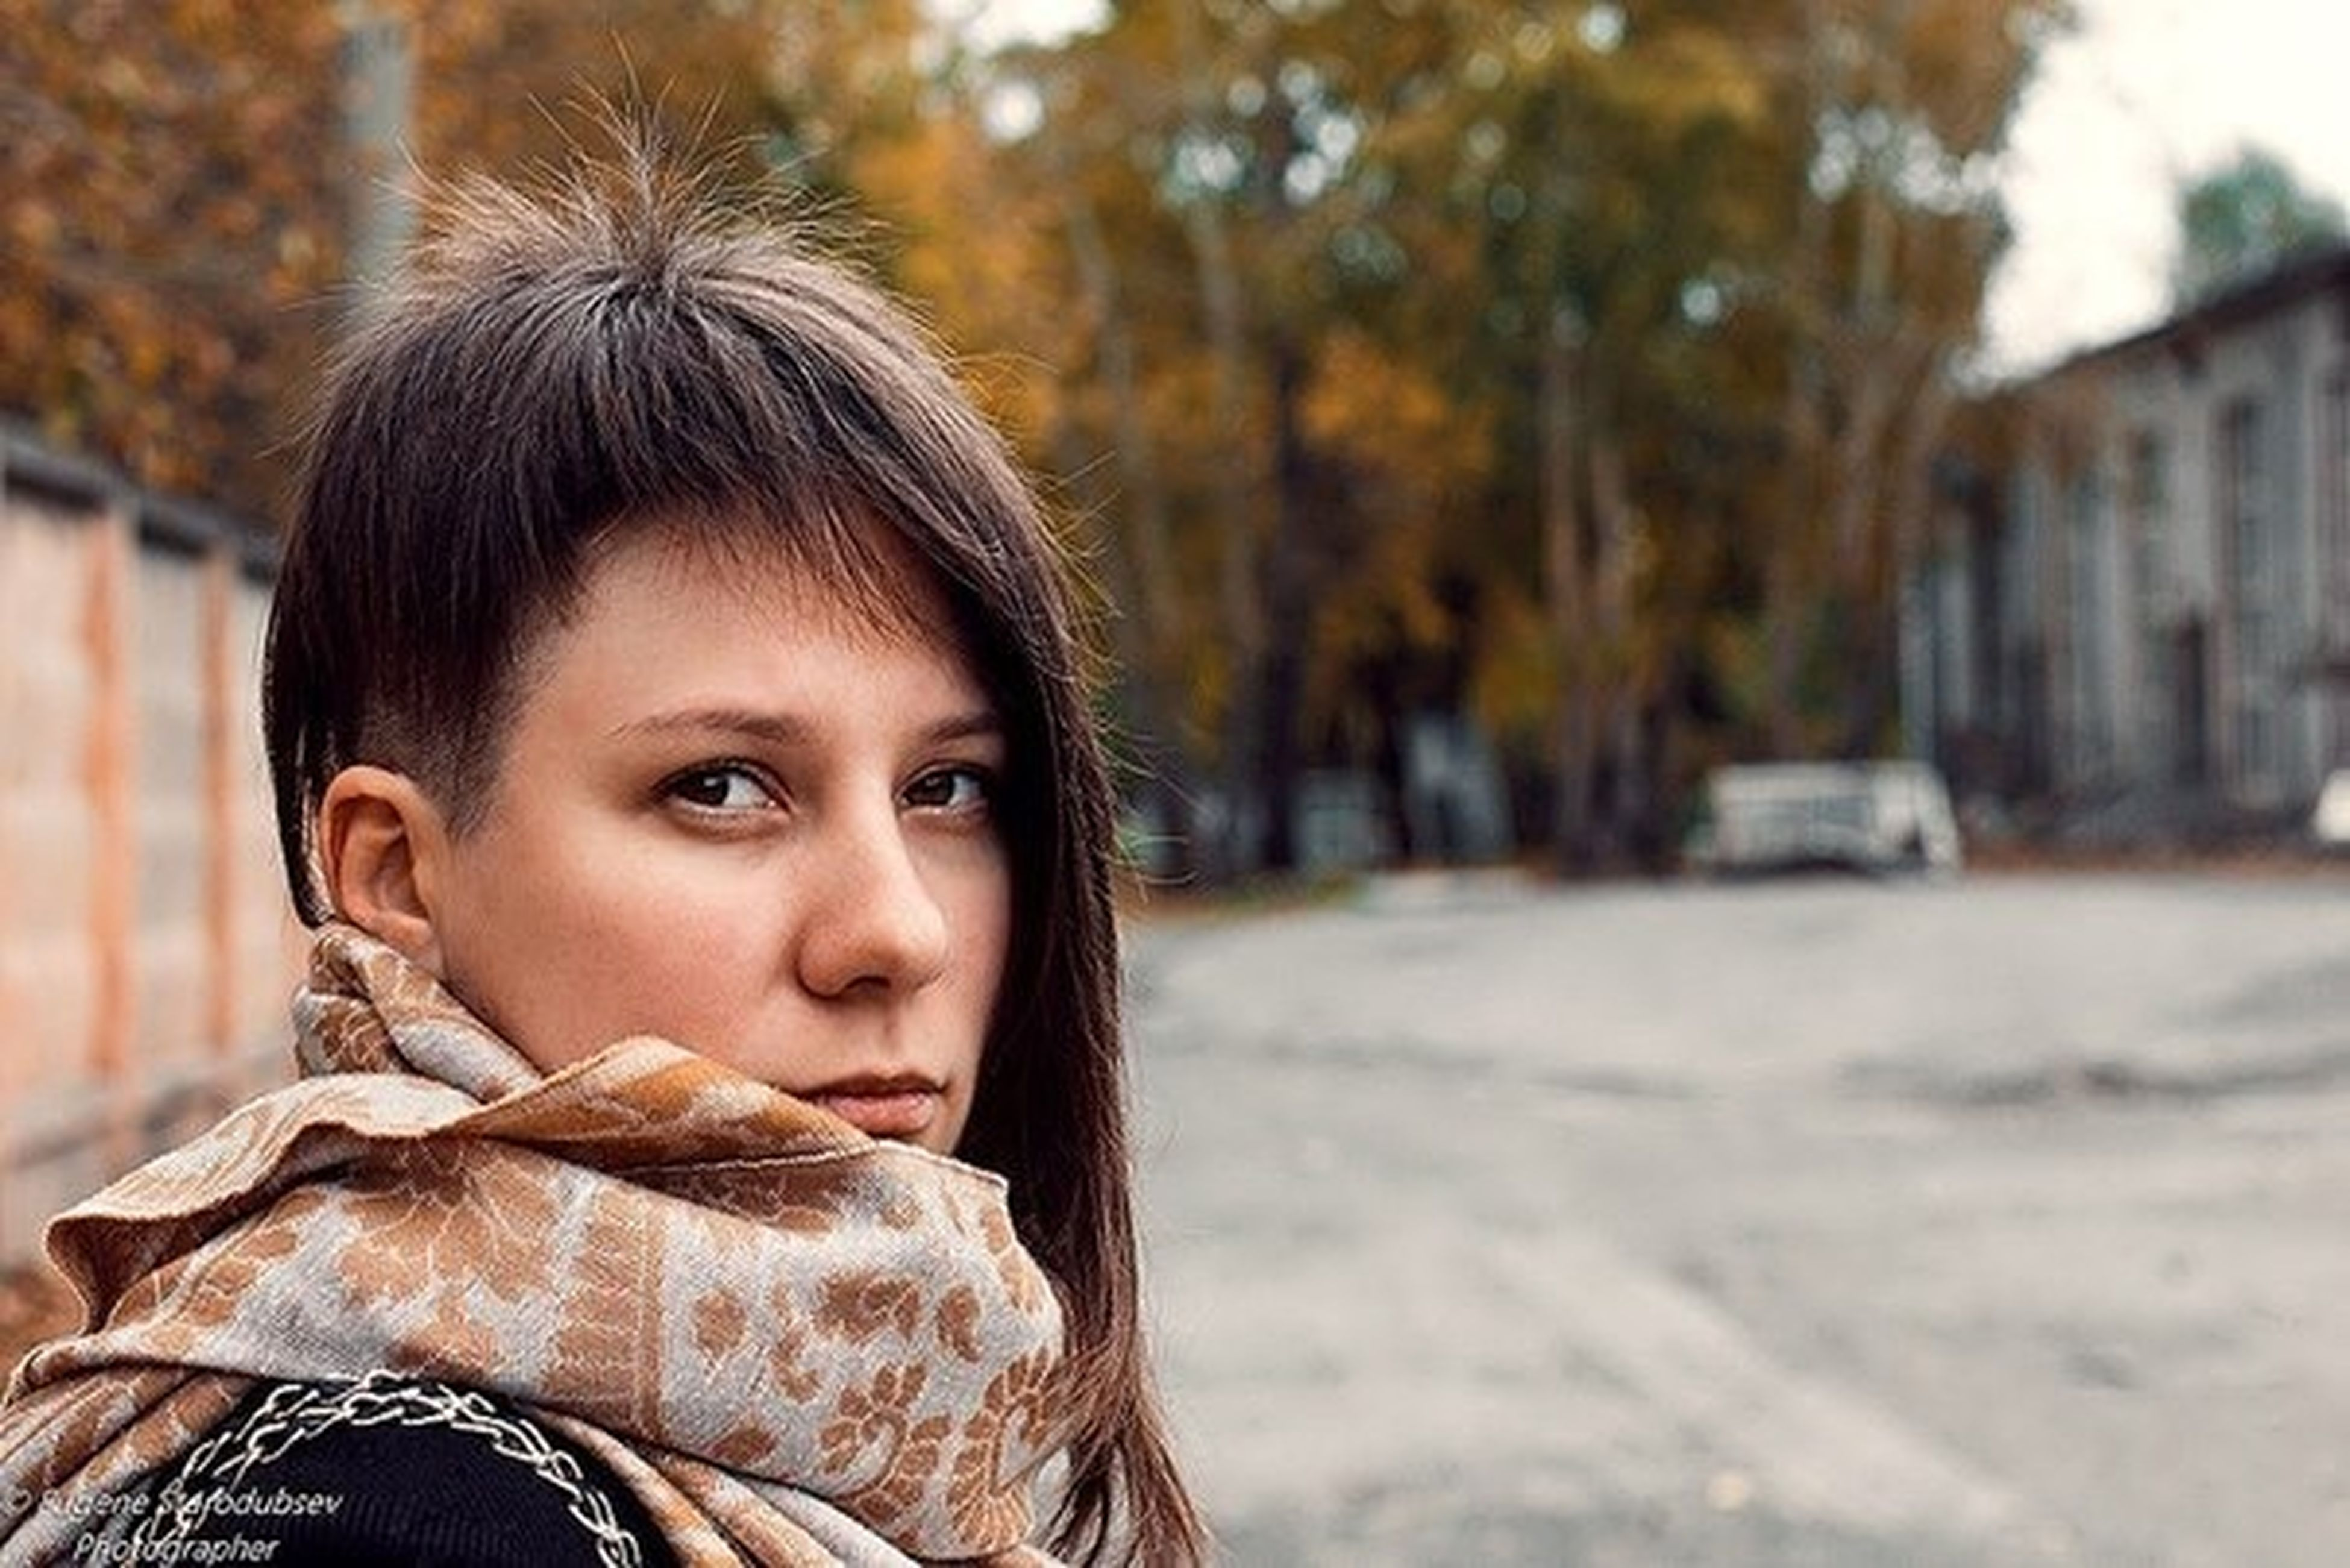 focus on foreground, person, lifestyles, headshot, childhood, leisure activity, elementary age, girls, close-up, front view, smiling, looking at camera, casual clothing, portrait, cute, innocence, park - man made space